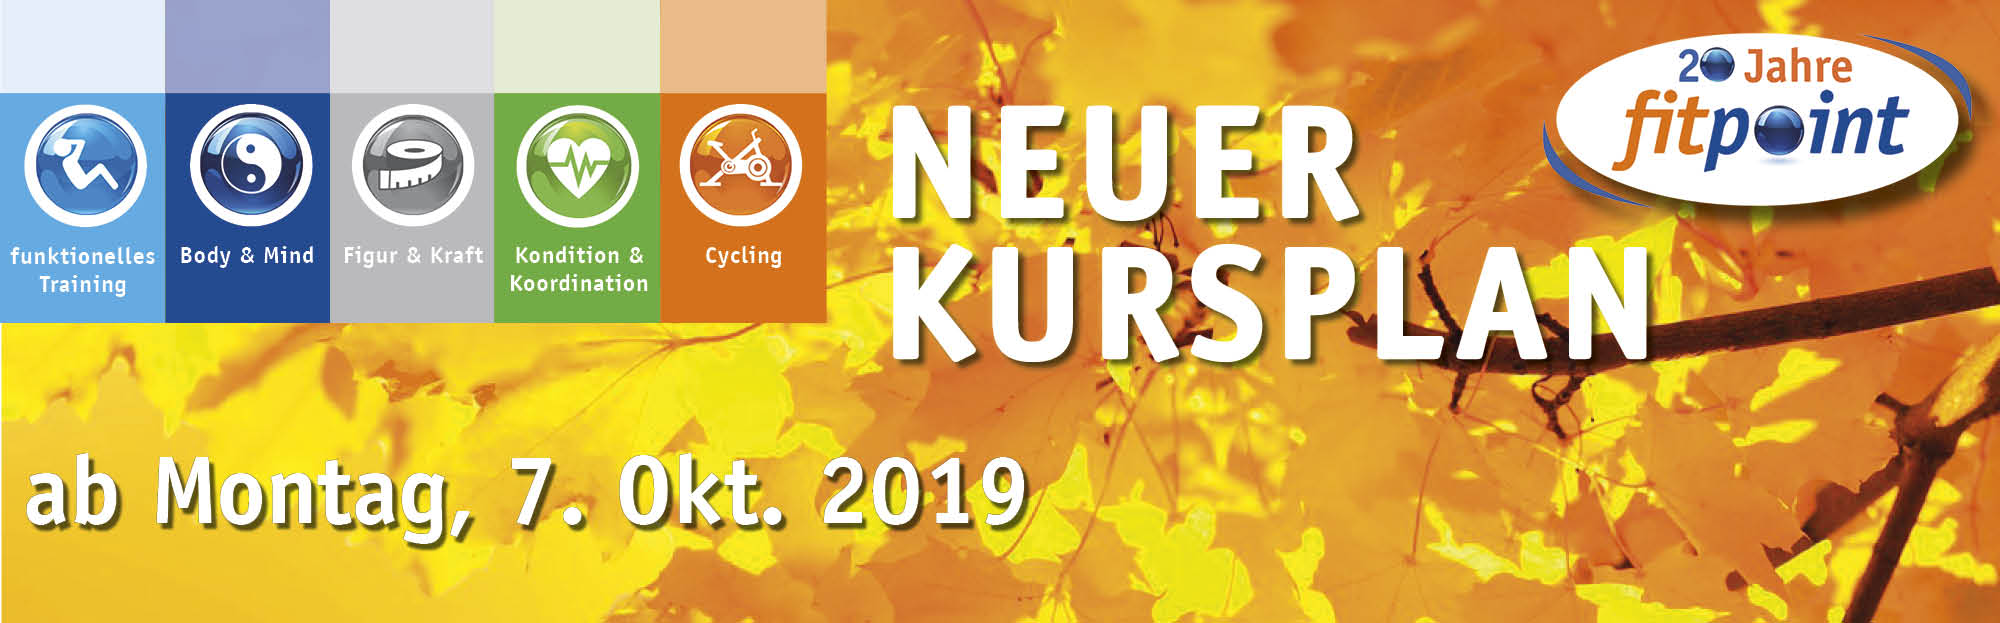 Neuer Kursplan ab 07.10.2019 Background